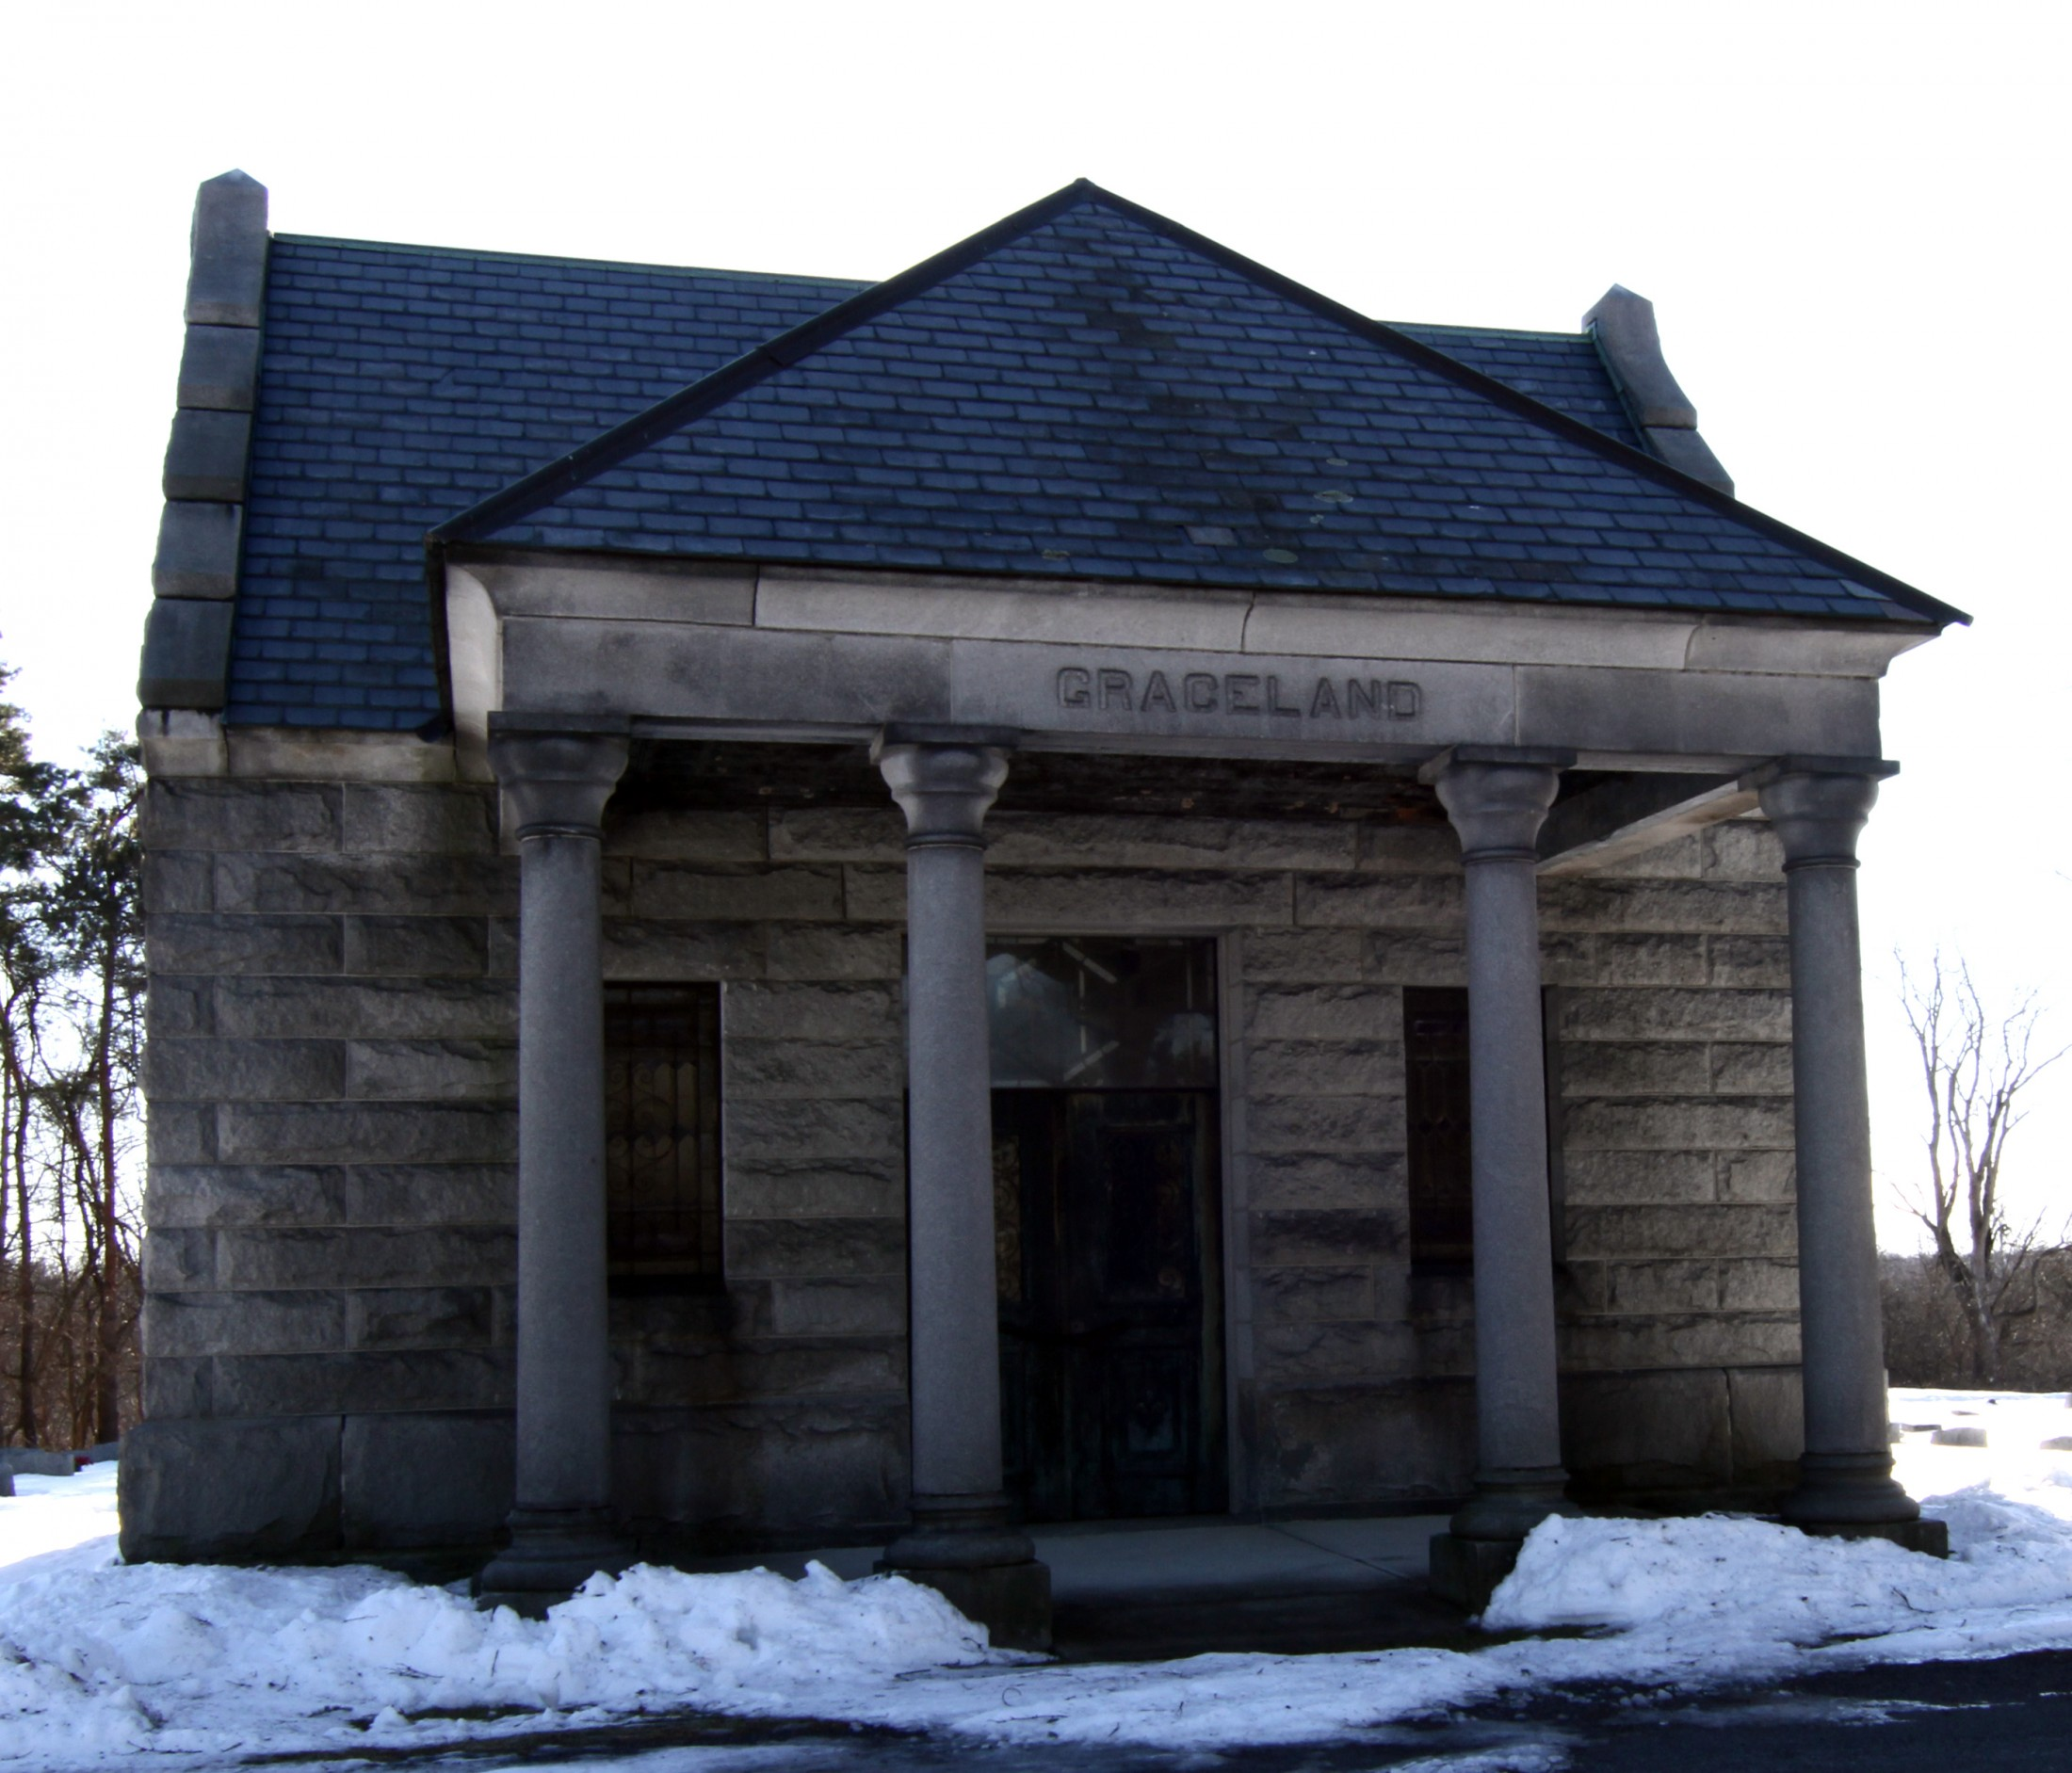 Mausoleum Graceland in the Winter